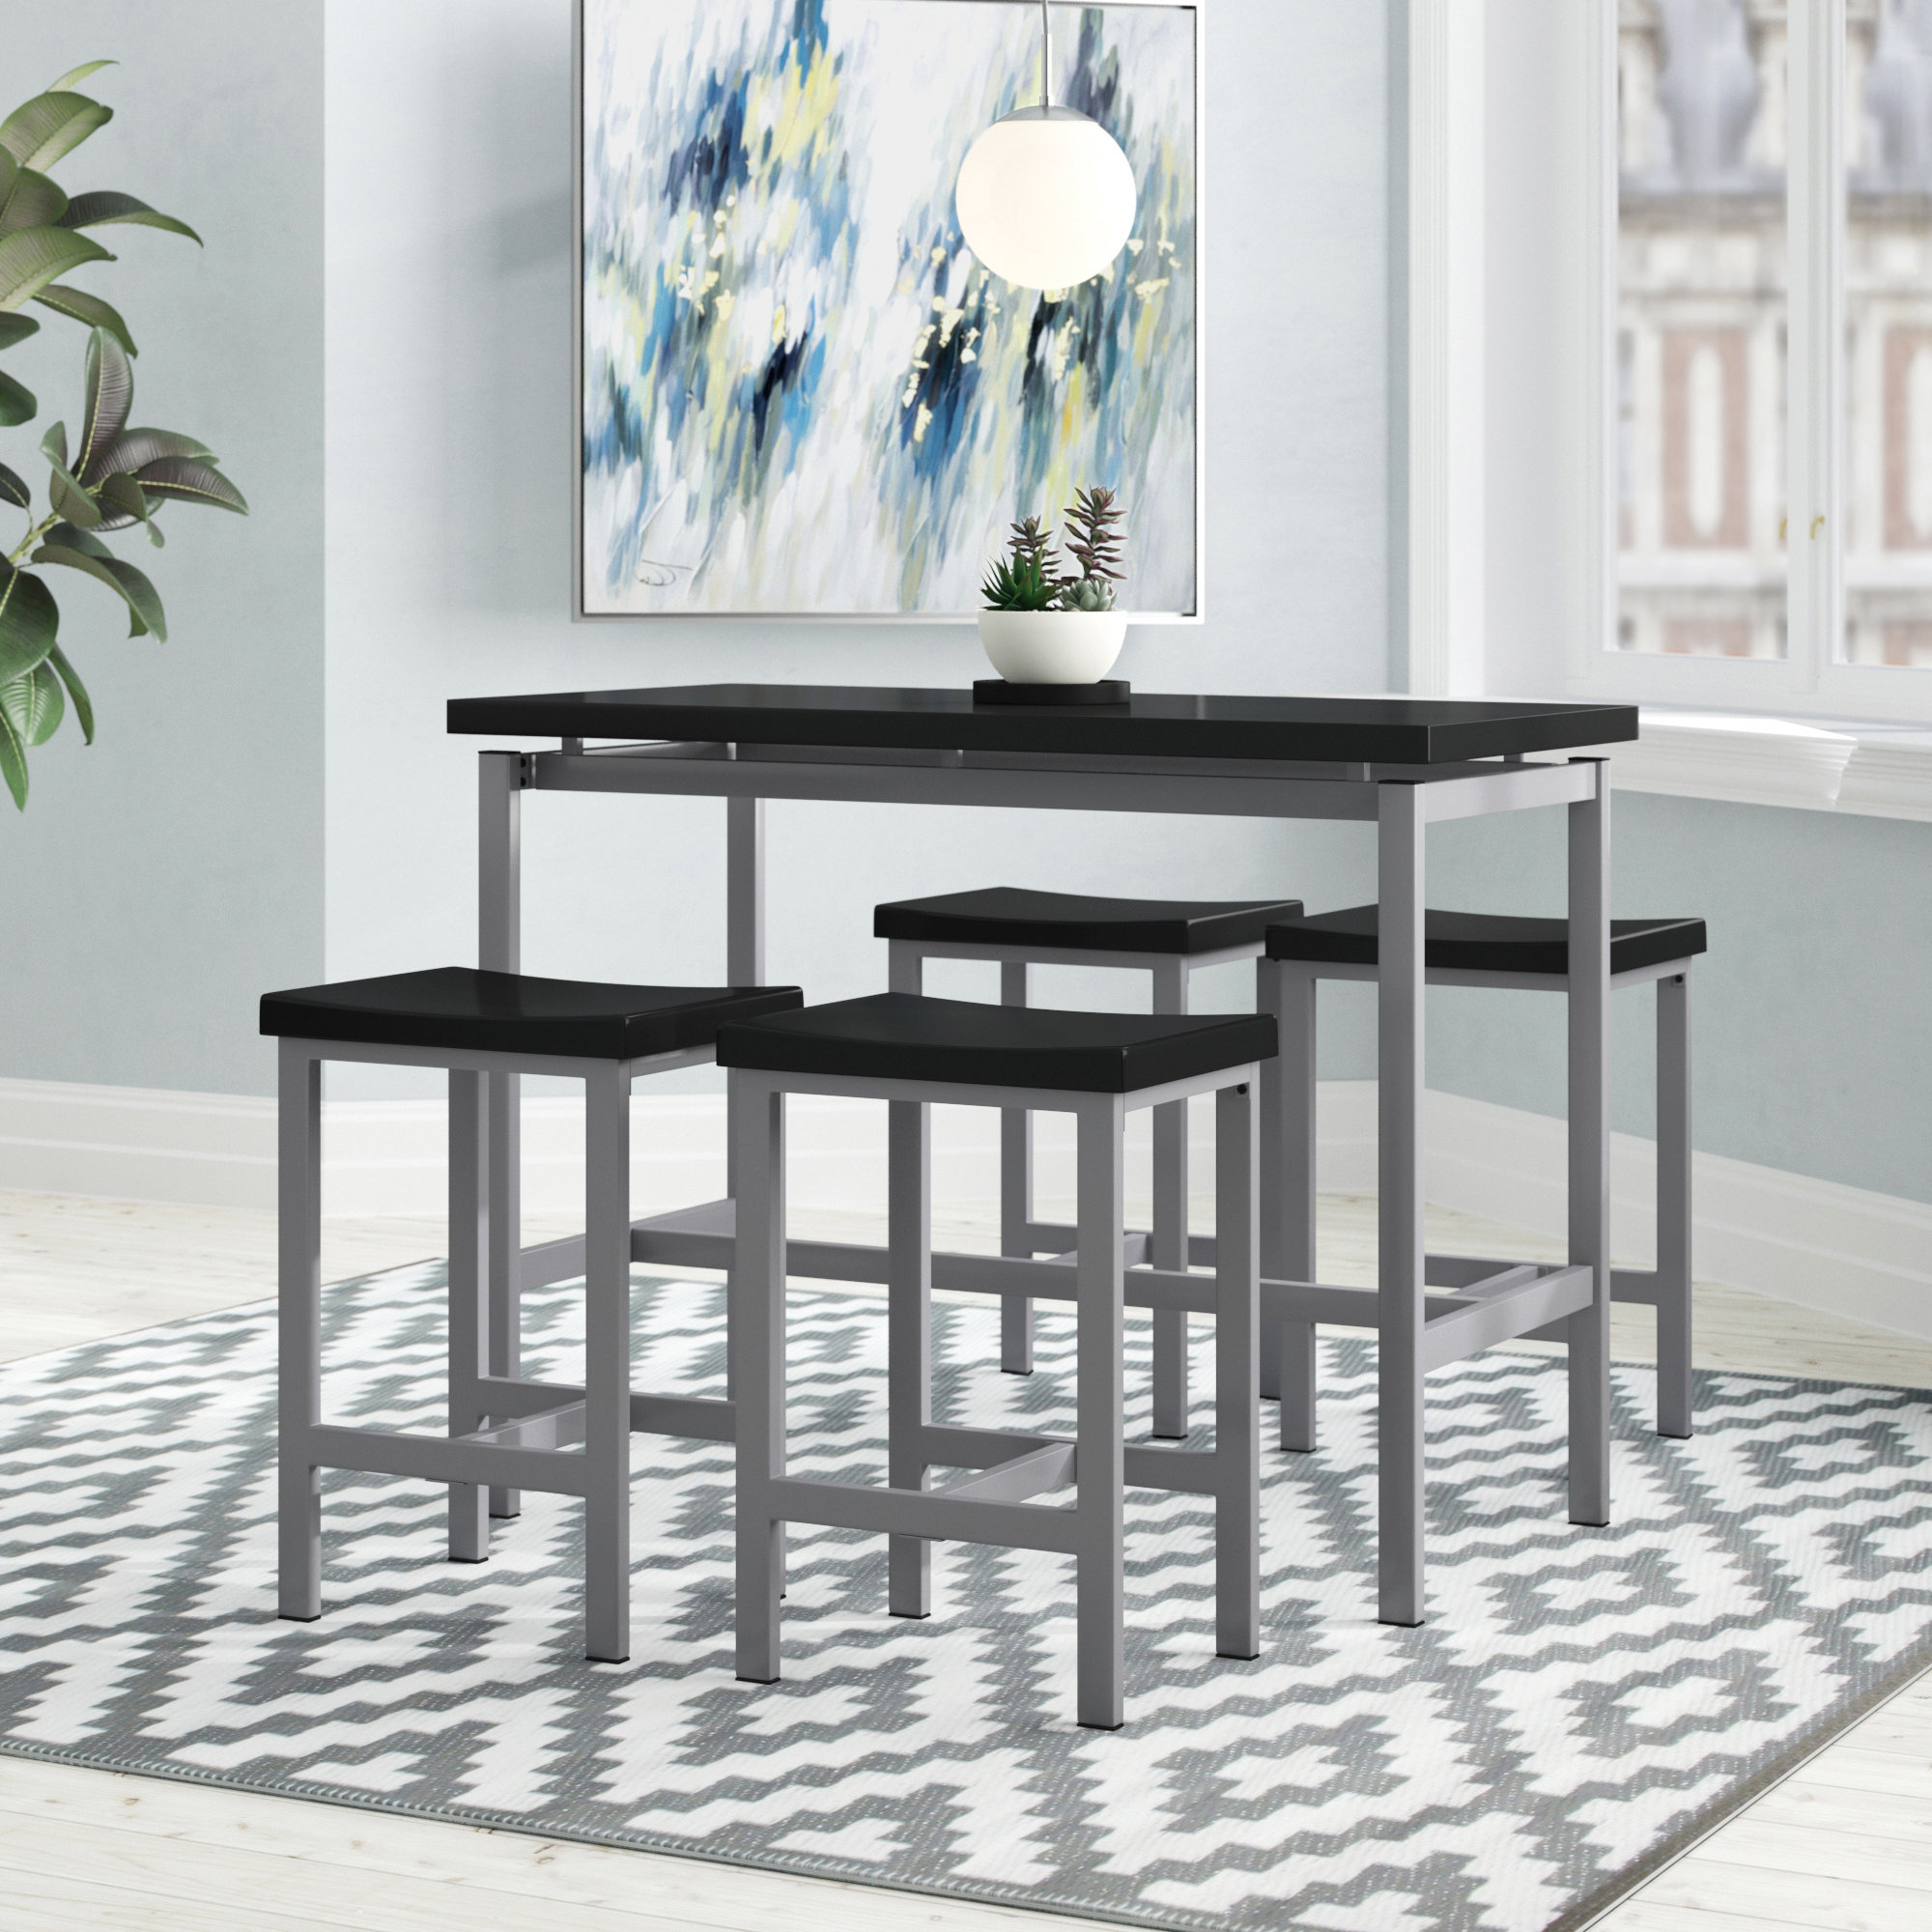 Popular Ebern Designs Mysliwiec 5 Piece Counter Height Breakfast Nook Dining With Lillard 3 Piece Breakfast Nook Dining Sets (View 17 of 25)